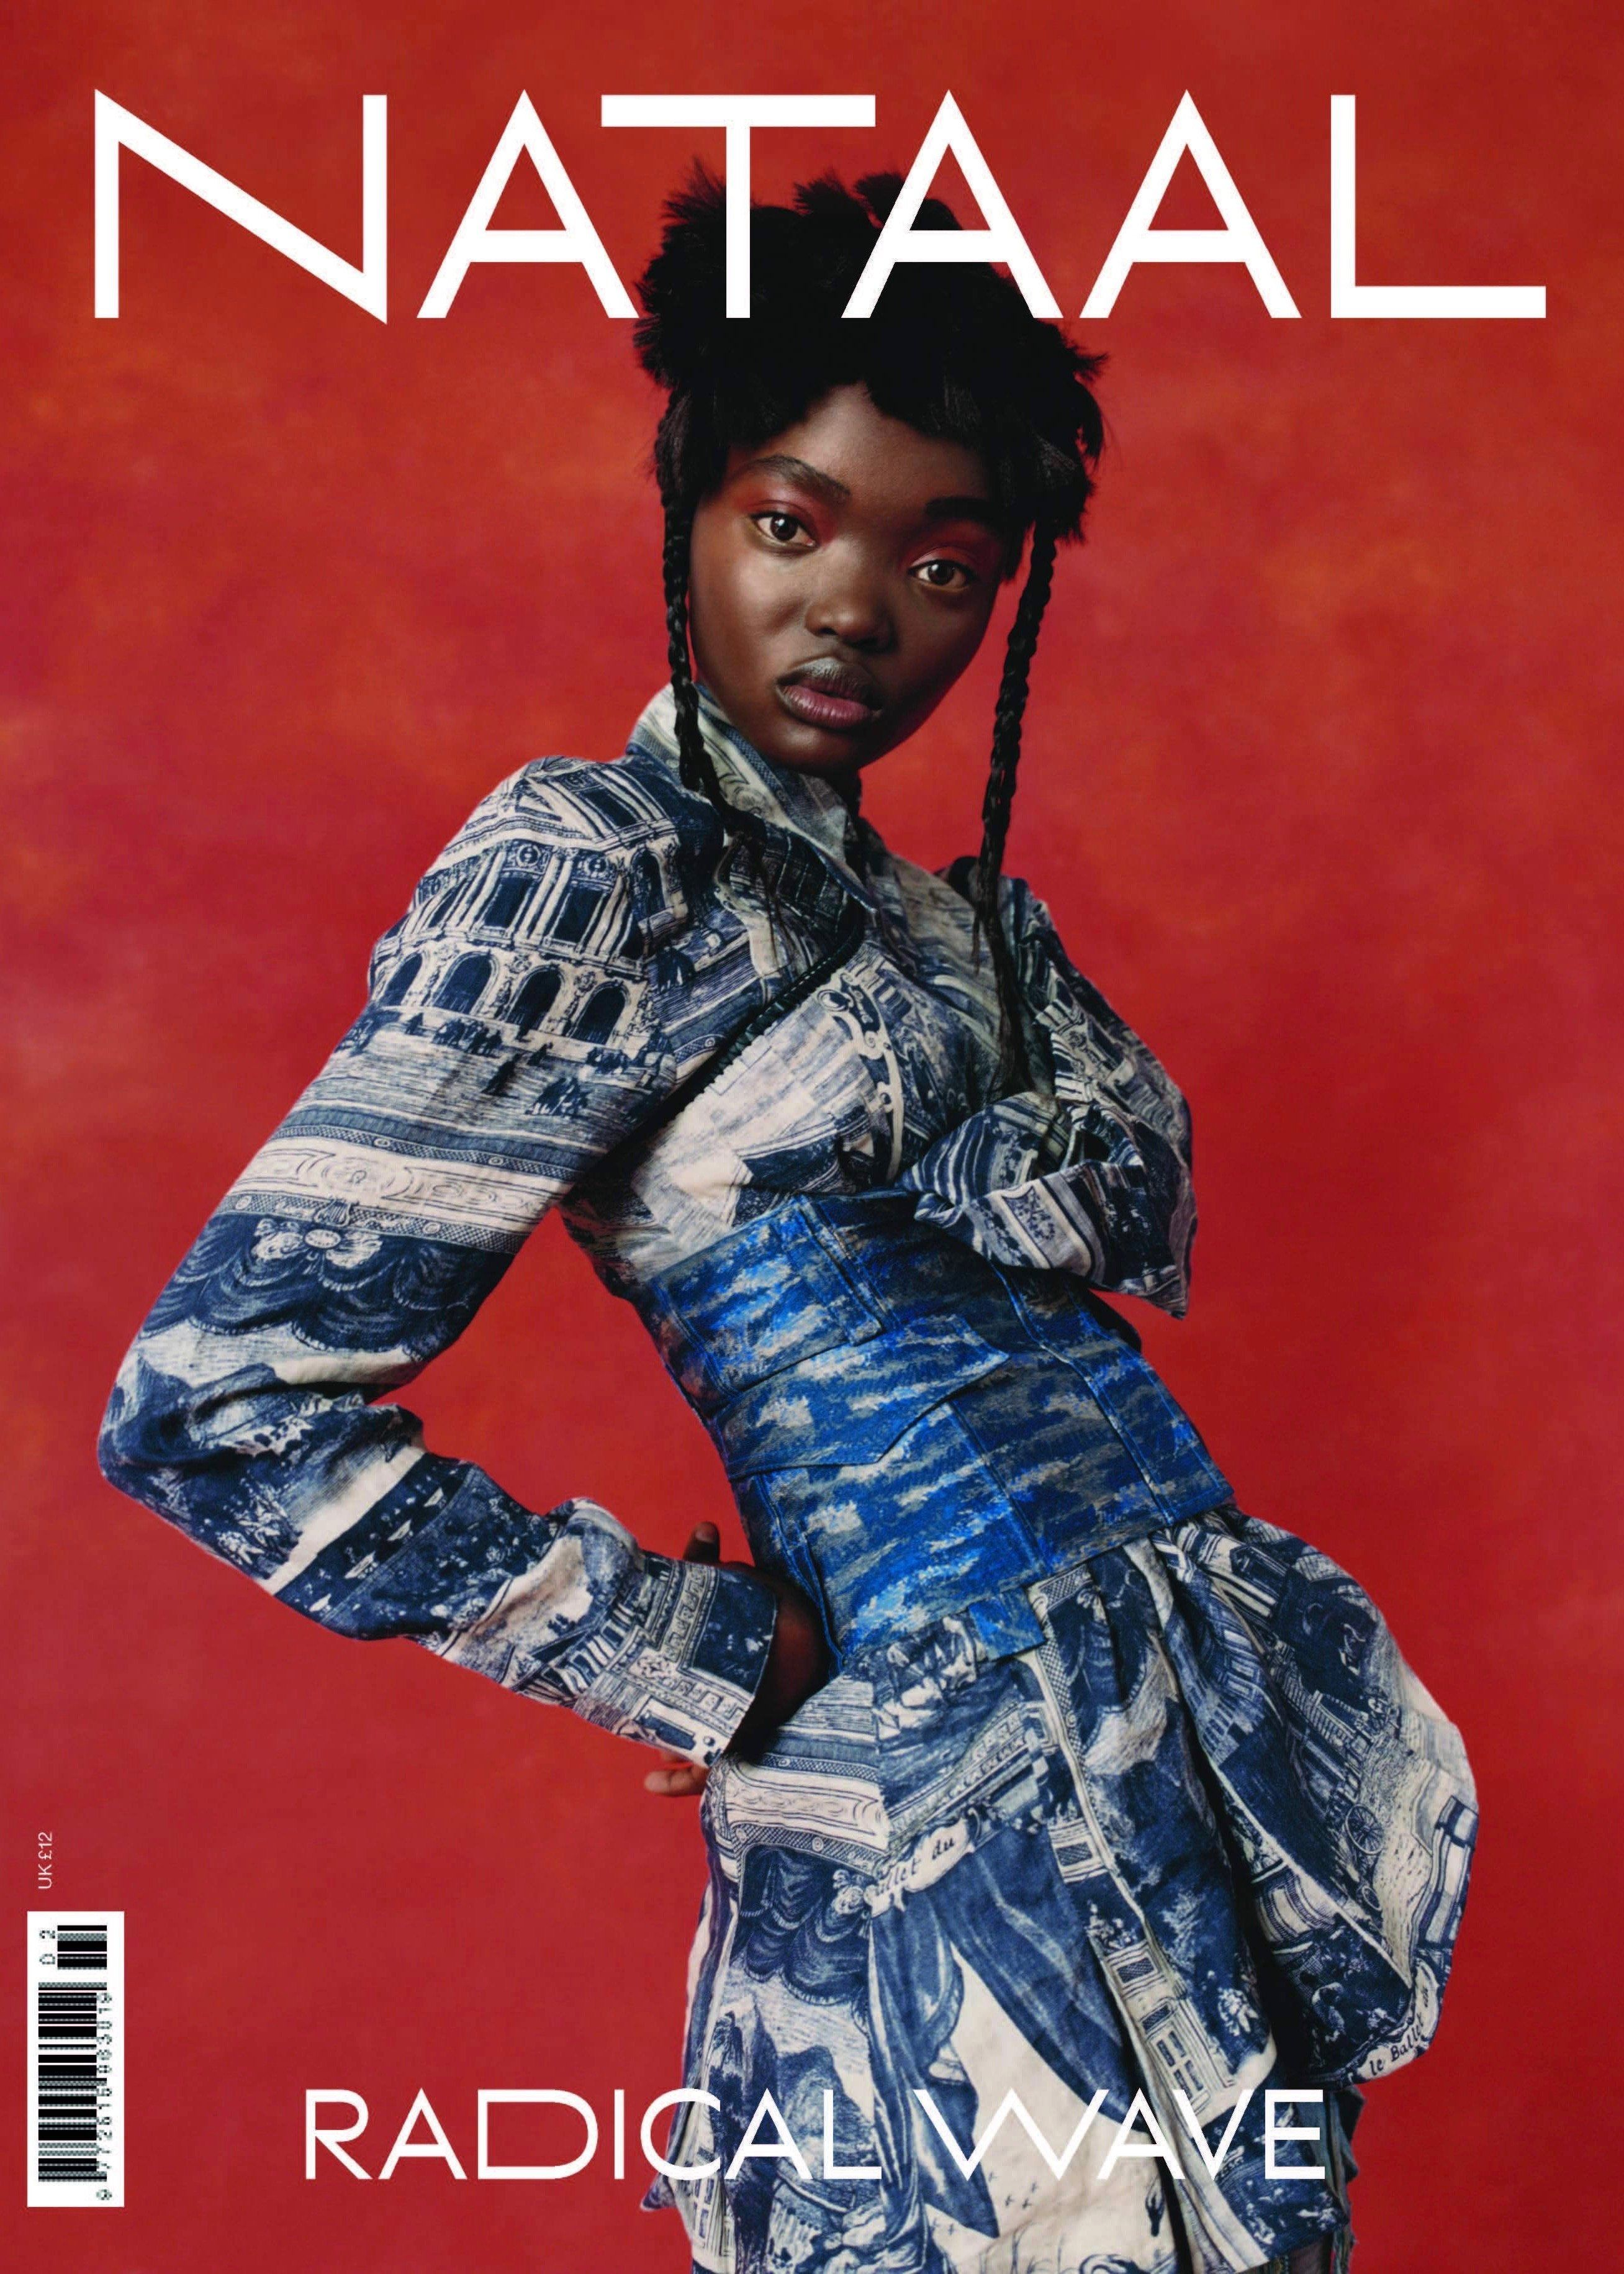 Nataal Magazine's second annual print issue is dedicated to Africa's radical wave and showcases diverse storytelling by inspiring artists around the globe. The large-format magazine has a double cover and 384 pages of fashion, music, visual arts and culture. Exclusives include interviews with Neneh Cherry, Little Simz, Art Comes First, Mowalola Ogunlesi, Nicholas Daley, Bianca Saunders, Maki Oh, Kenneth Ize, MaXhosa's Laduma Ngxokolo, Lukhanyo Mdingi, Fuse ODG, David Adjaye, Jenn Nkiru, Wanuri K